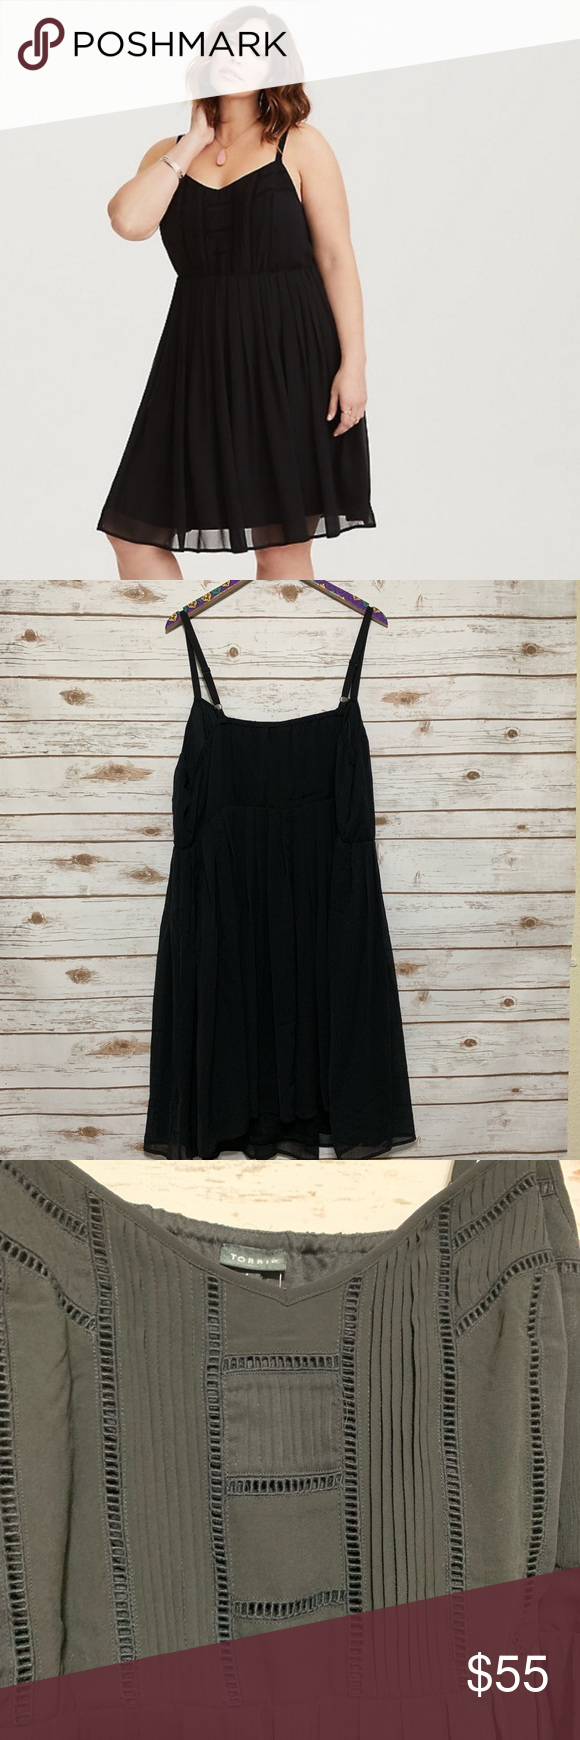 a479b1933ef Torrid black pleated chiffon mini dress NWT Torrid size 4 (4x